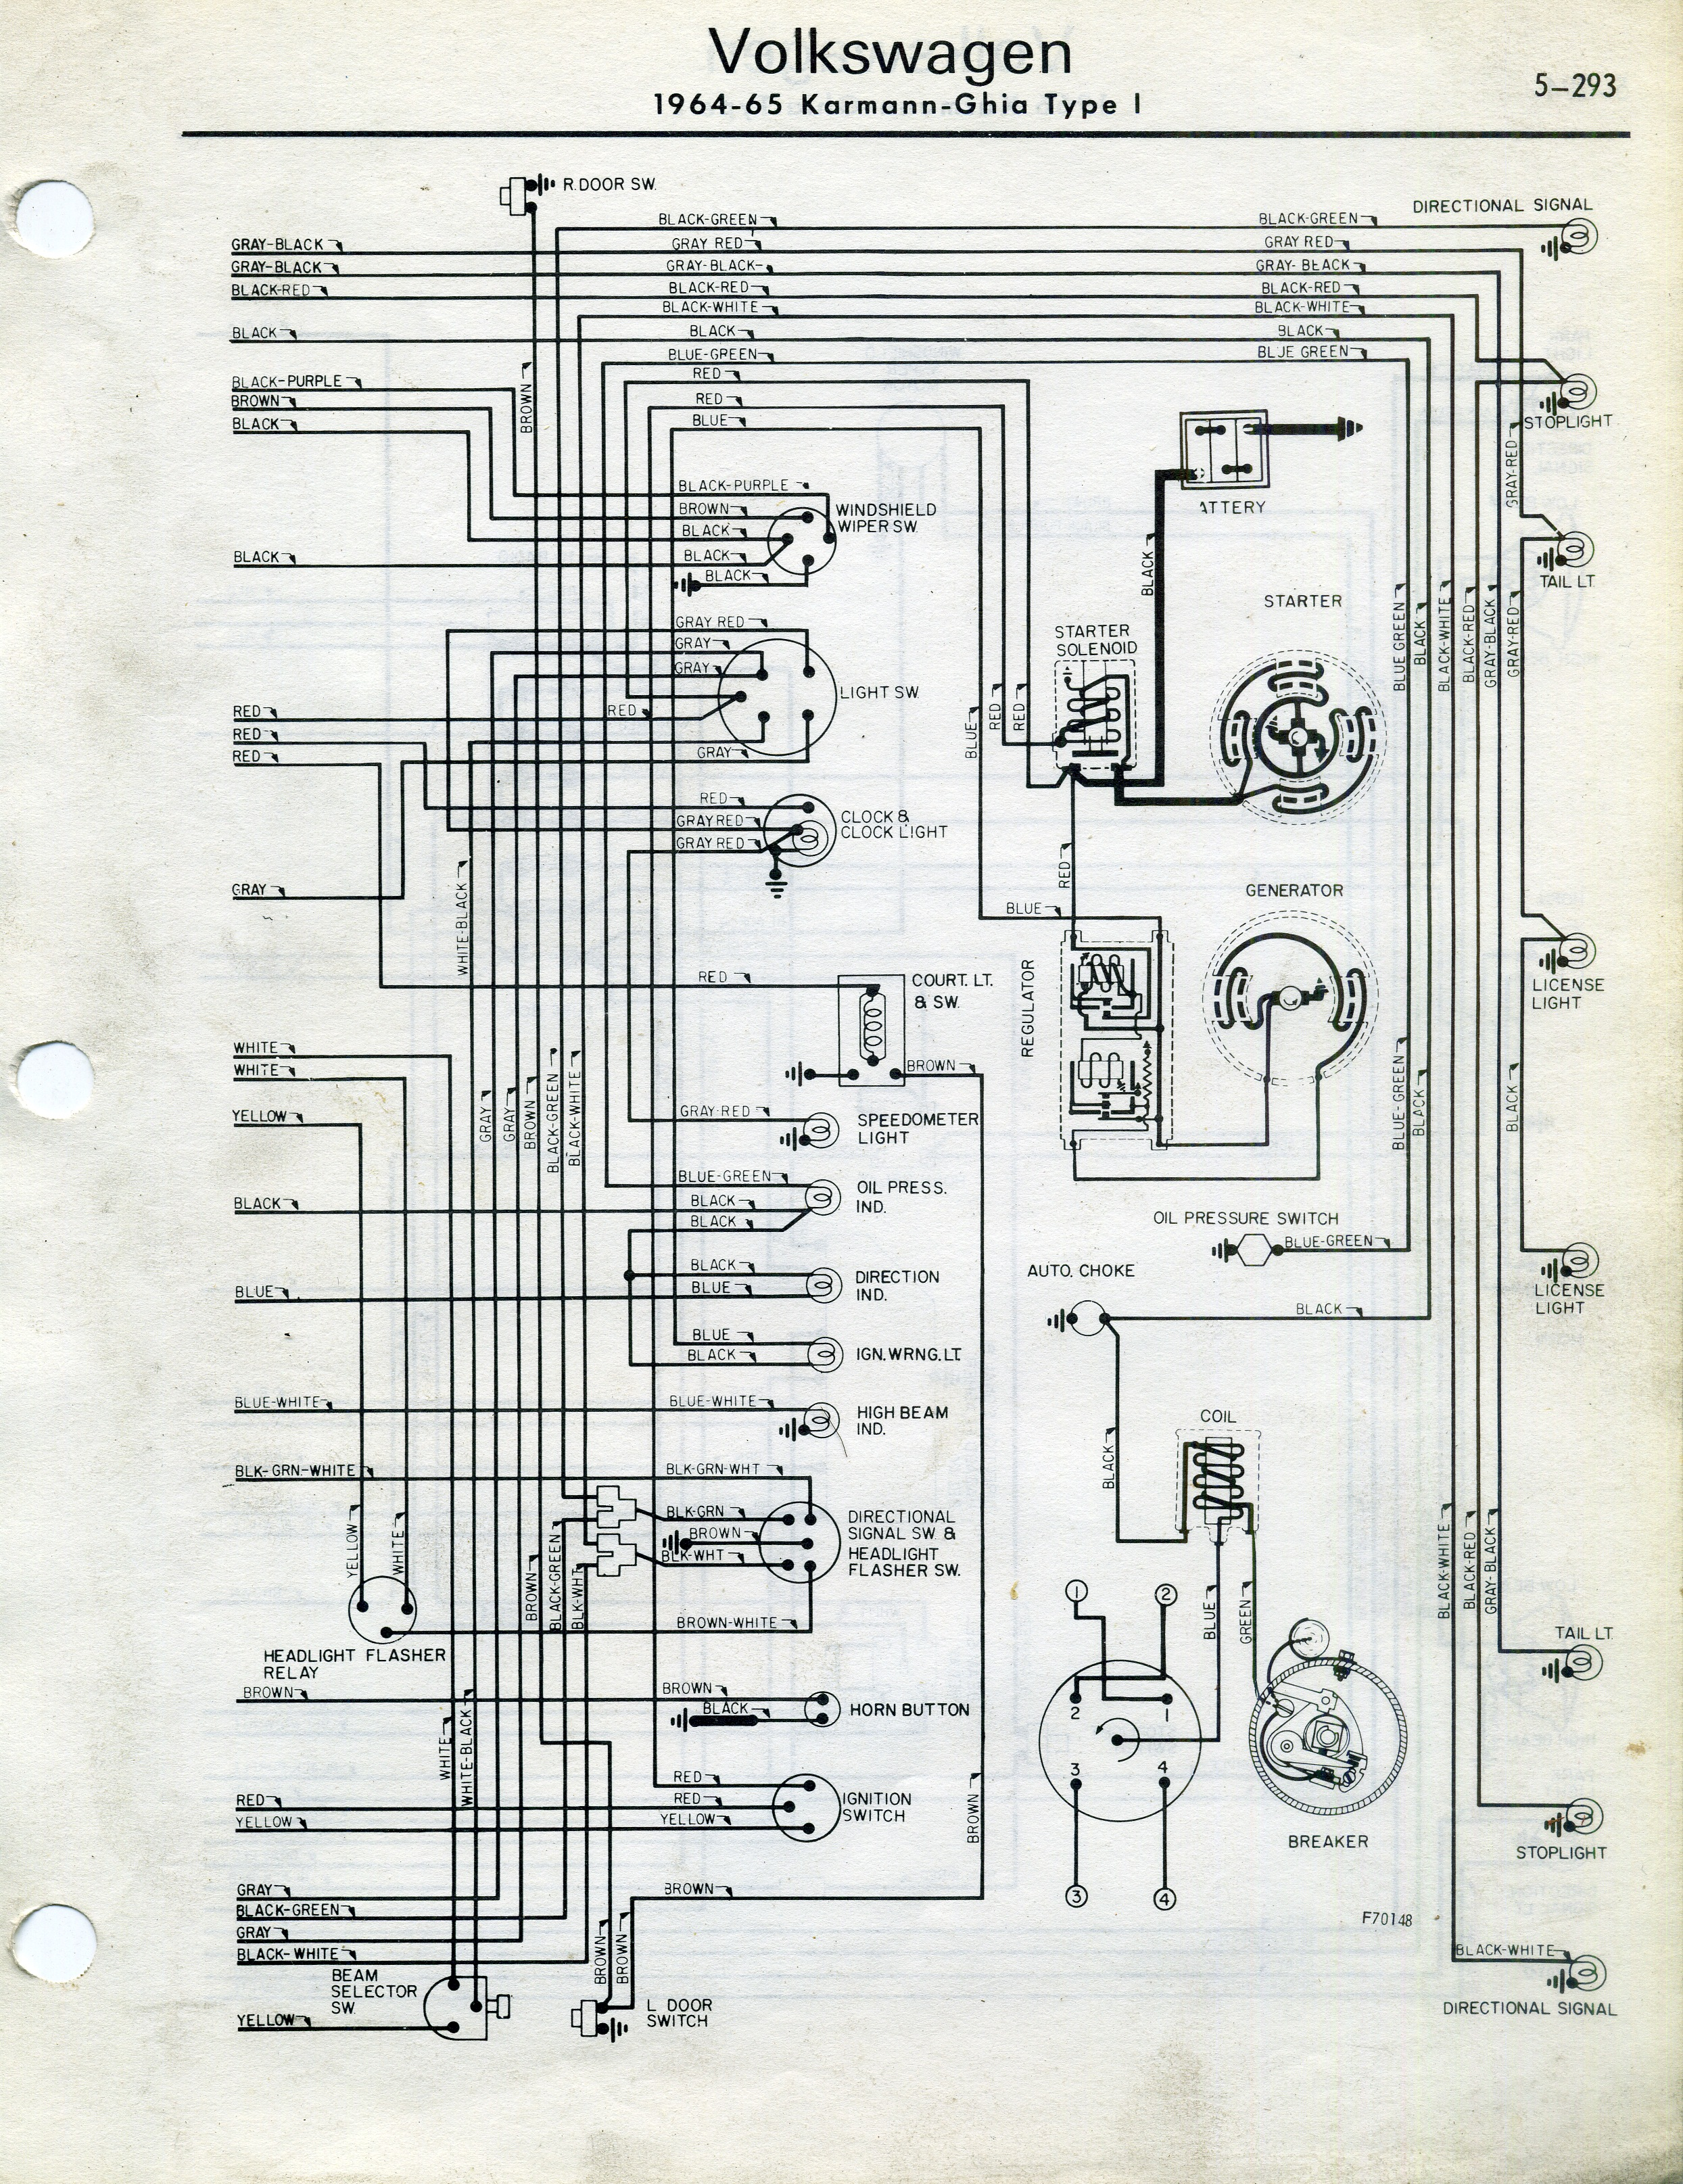 thesamba.com :: karmann ghia wiring diagrams 72 karmann ghia wiring diagram